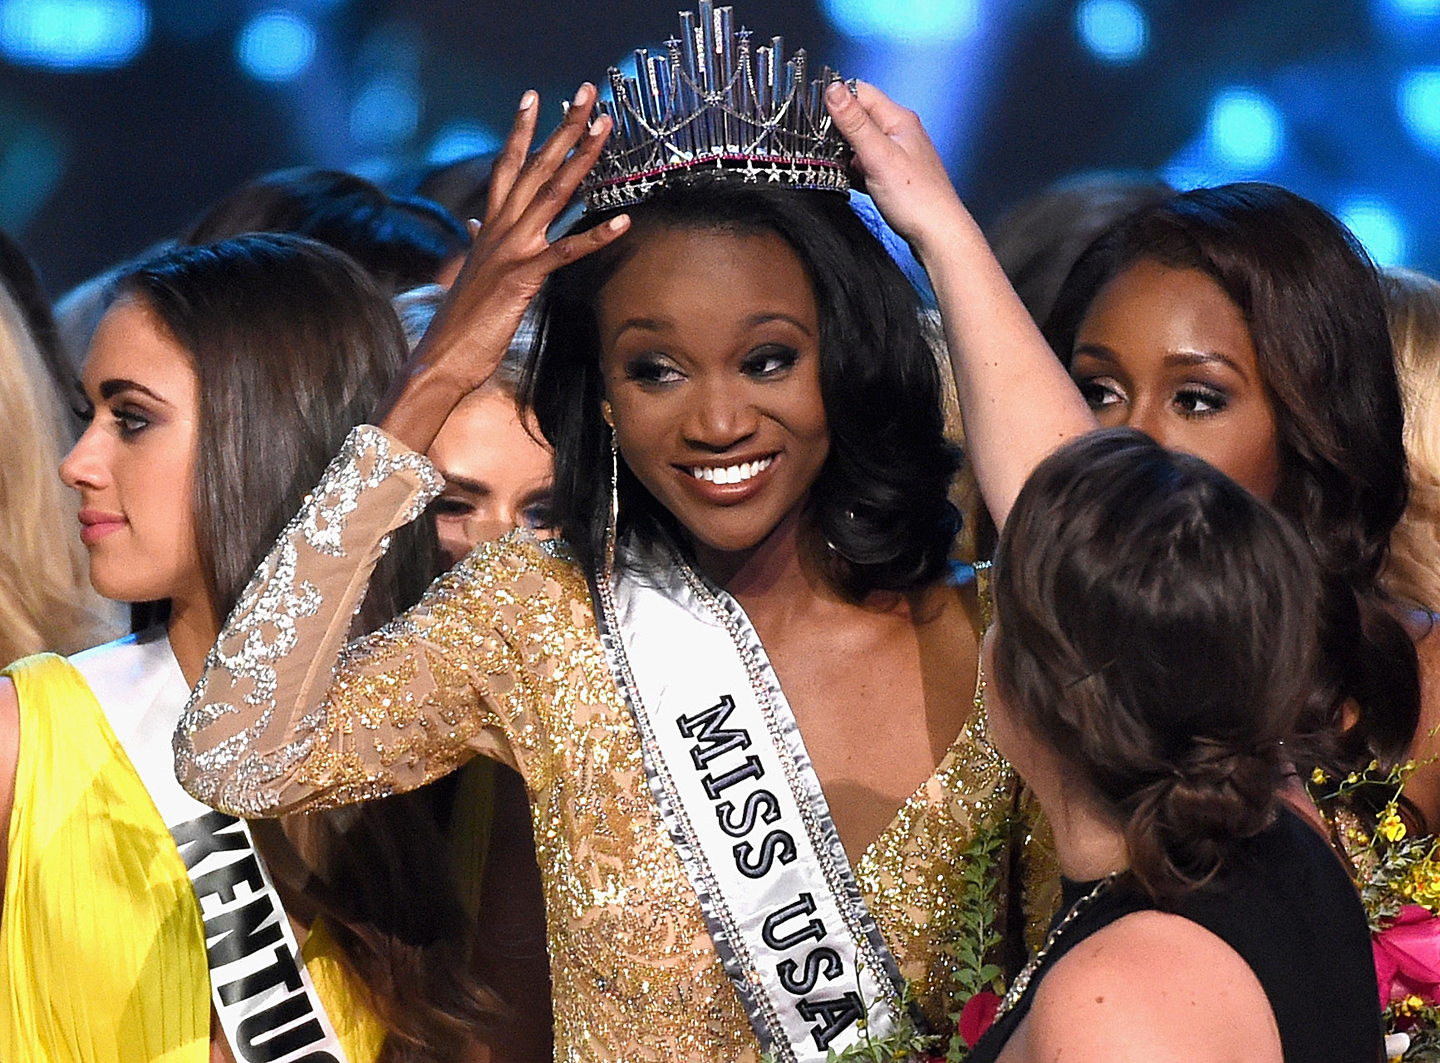 Miss District of Columbia USA 2016 Deshauna Barber (C) reacts with the other contestants after being crowned Miss USA 2016 during the 2016 Miss USA pageant at T-Mobile Arena on June 5, 2016 in Las Vegas, Nevada.